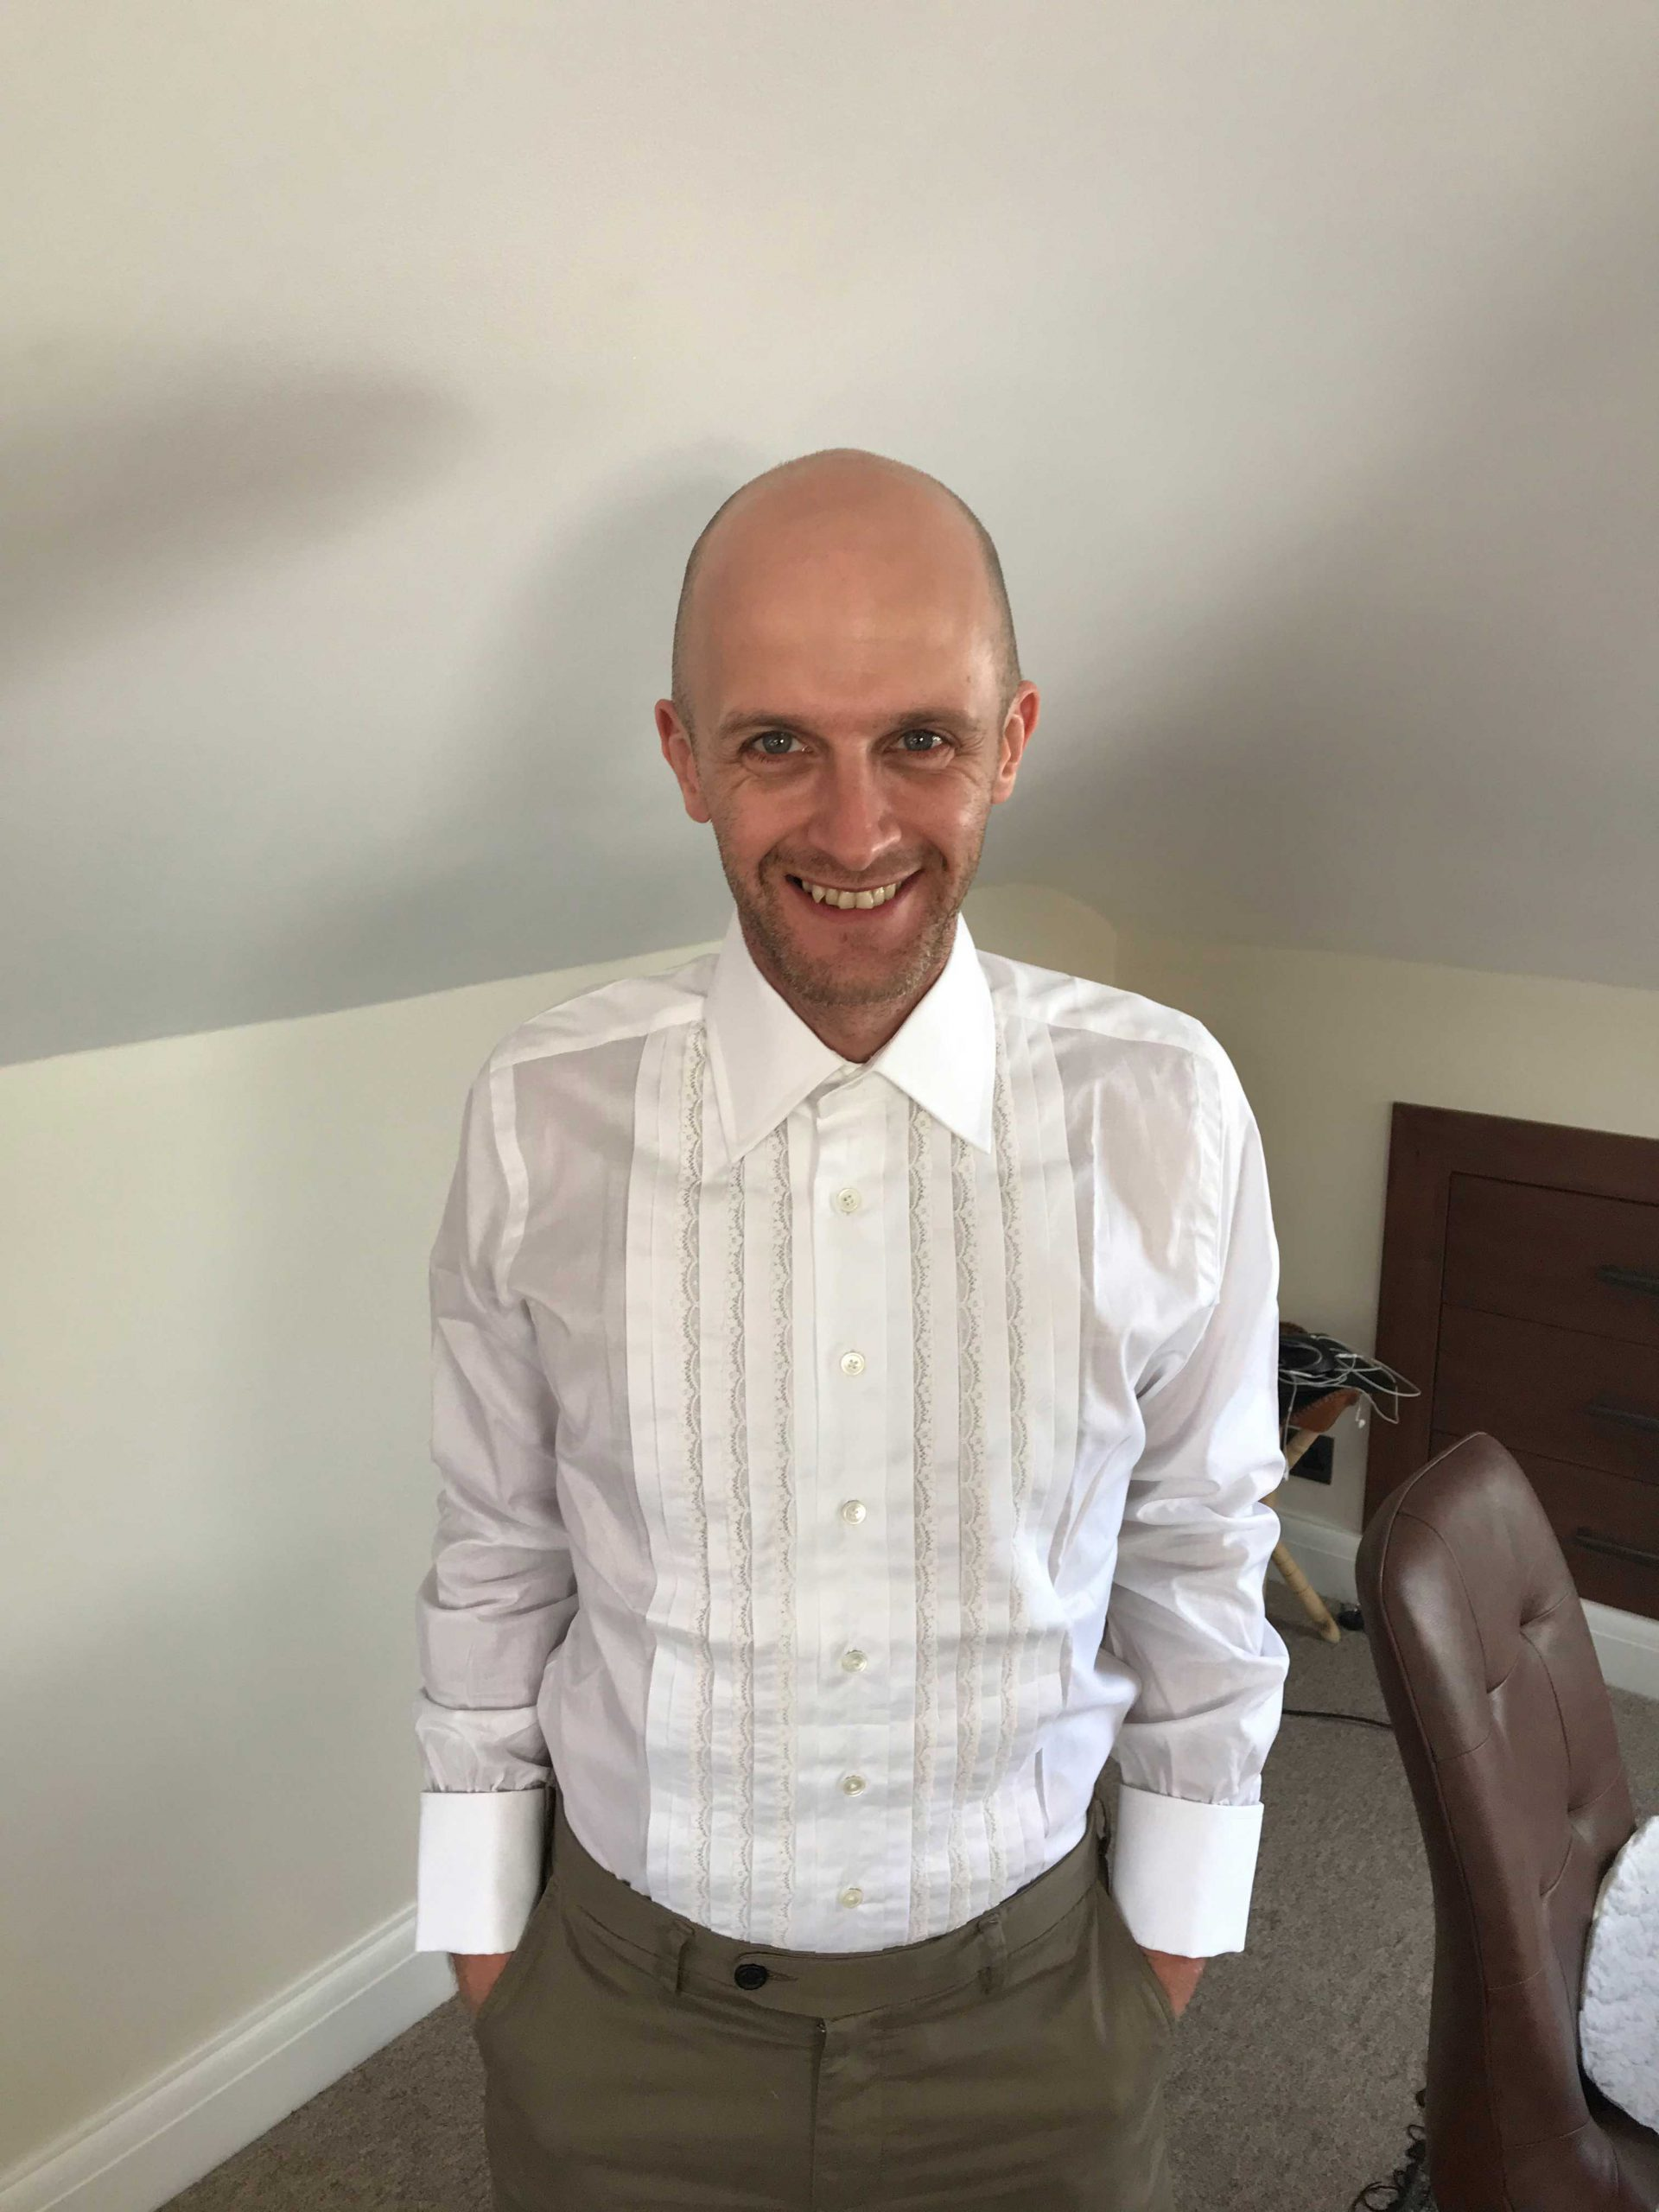 Pleated dress shirt from Frank Foster